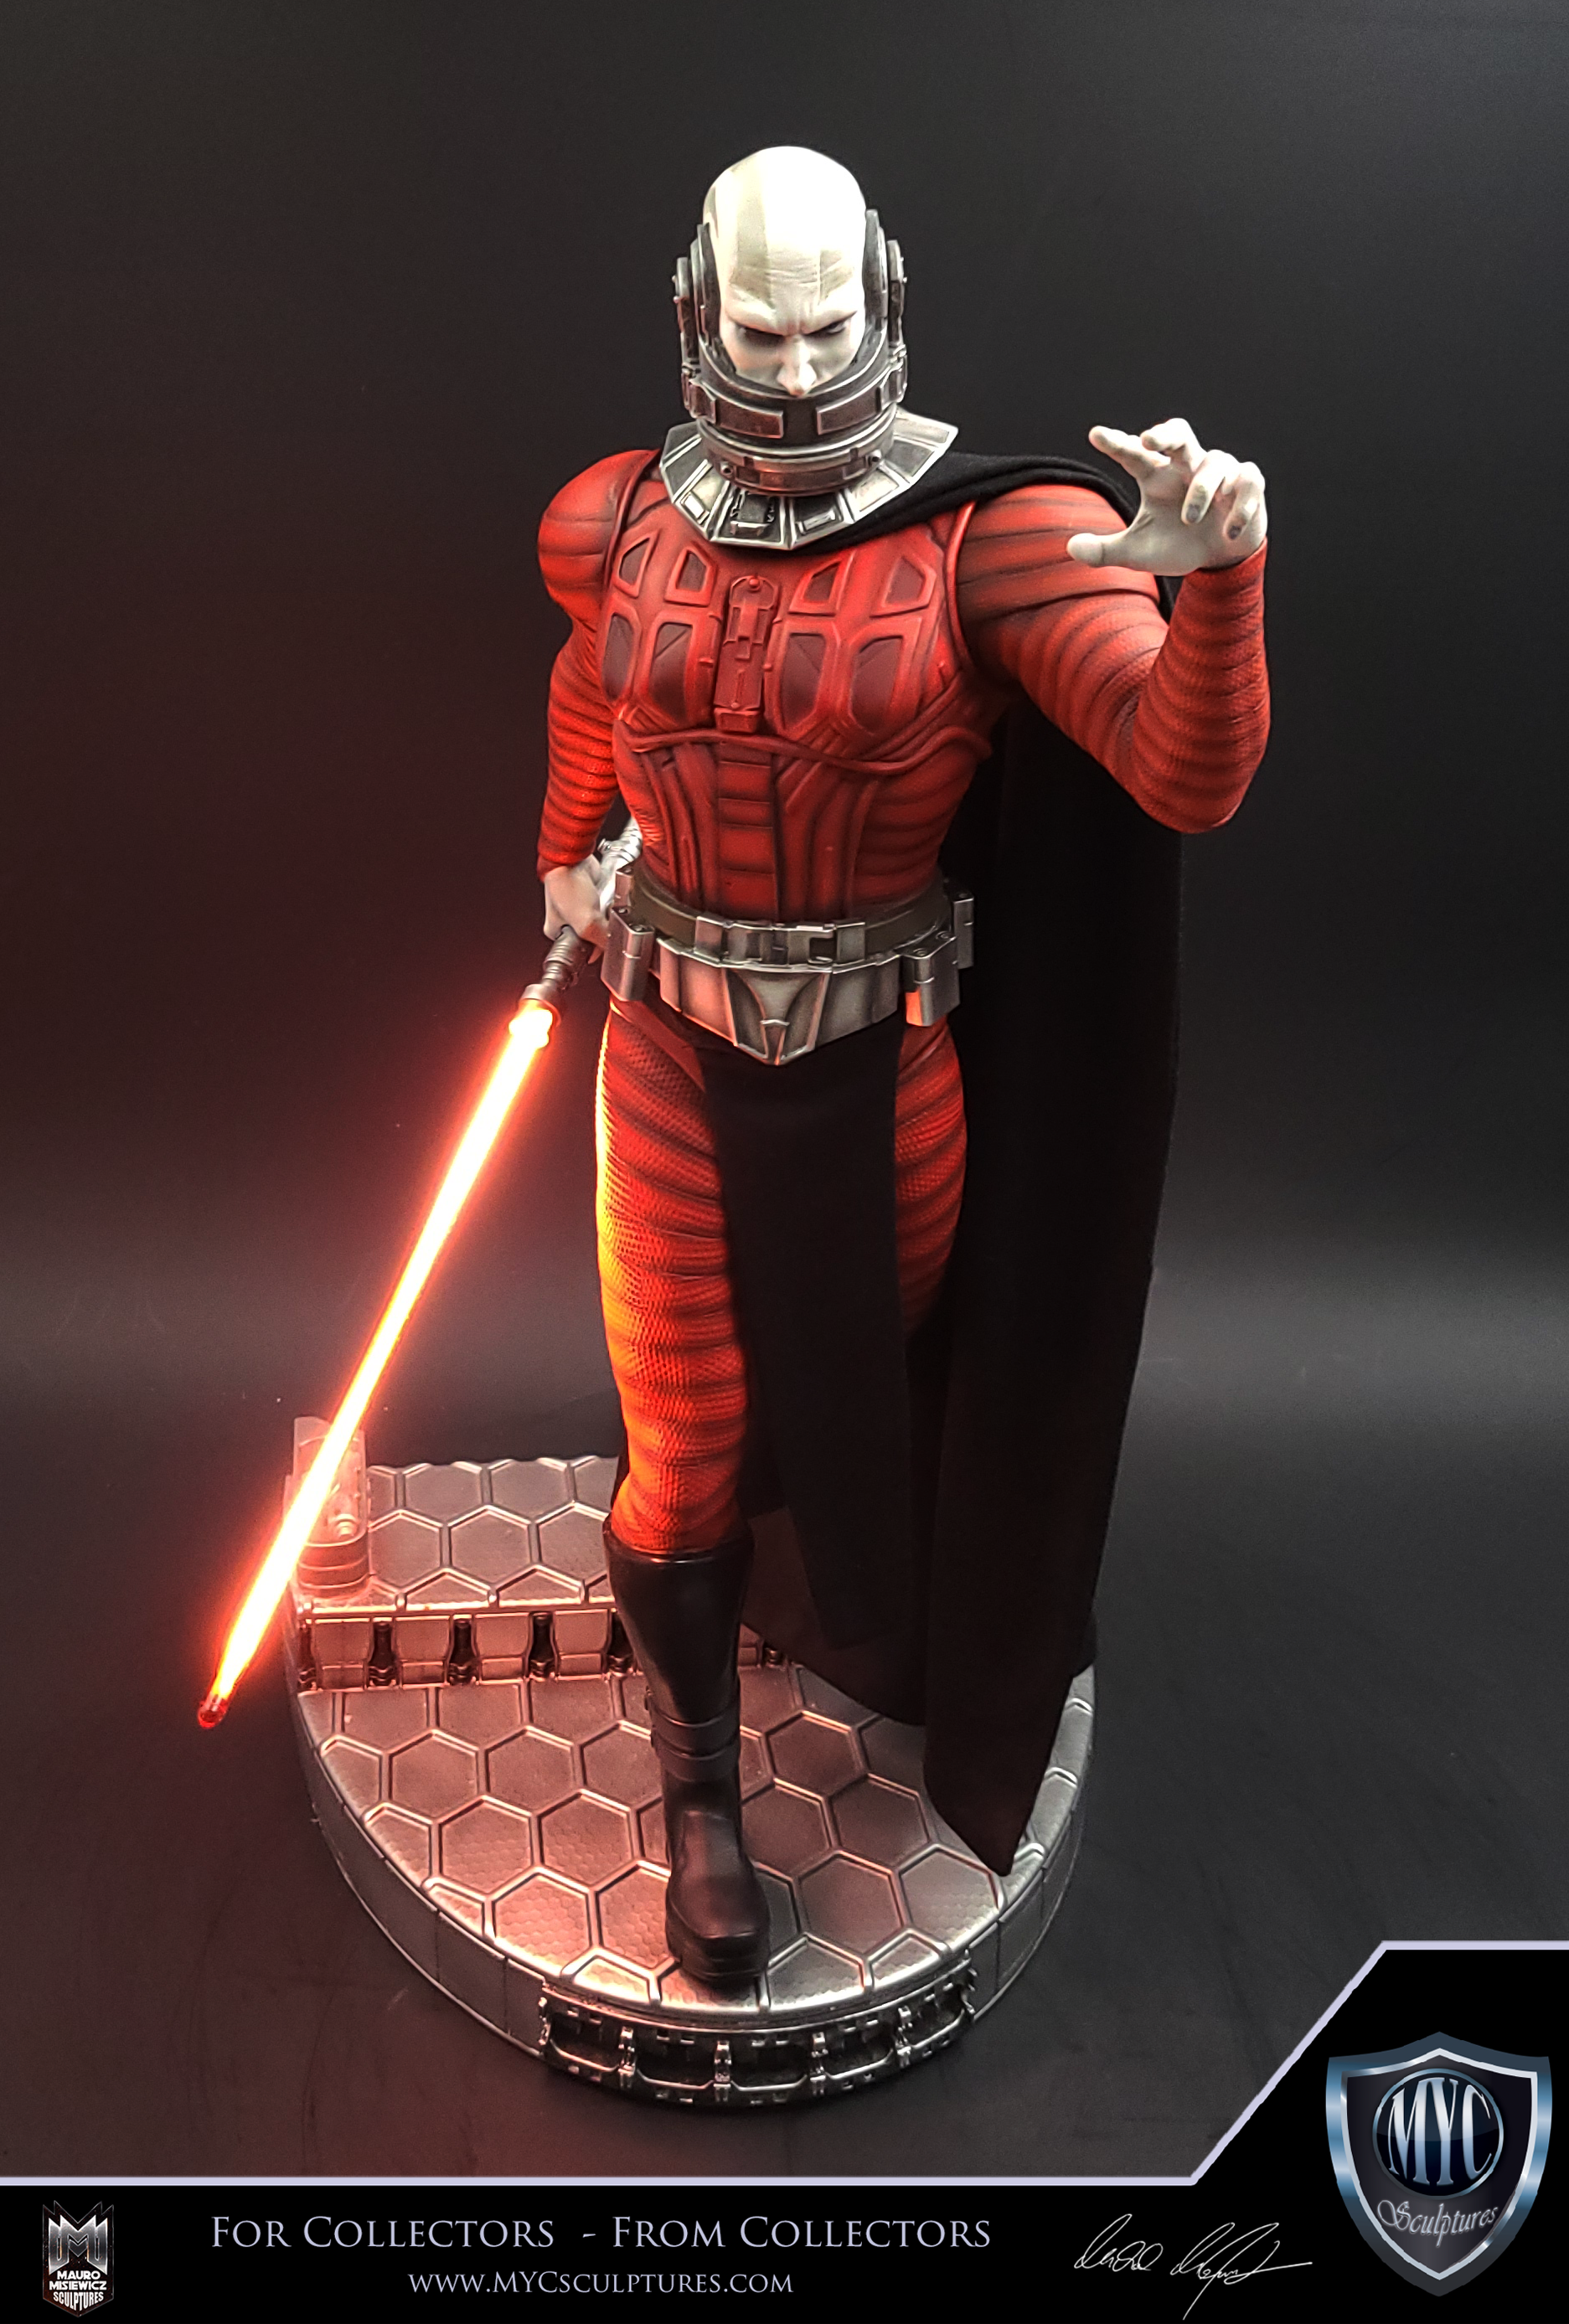 Darth_Malak_MYC_Sculptures_Statue_21